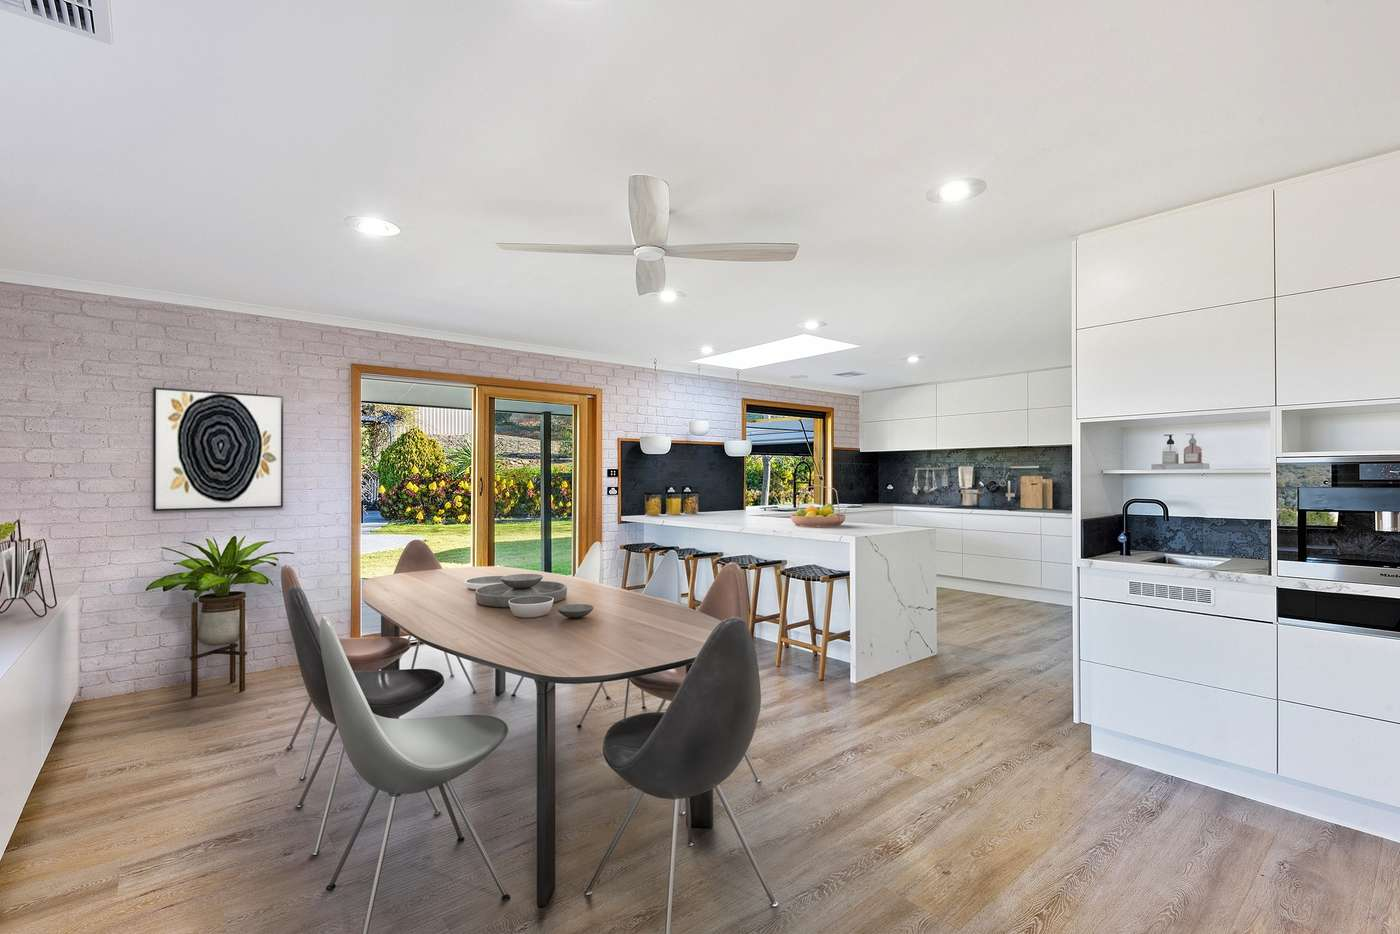 Sixth view of Homely house listing, 24 Michelle Drive, Maiden Gully VIC 3551